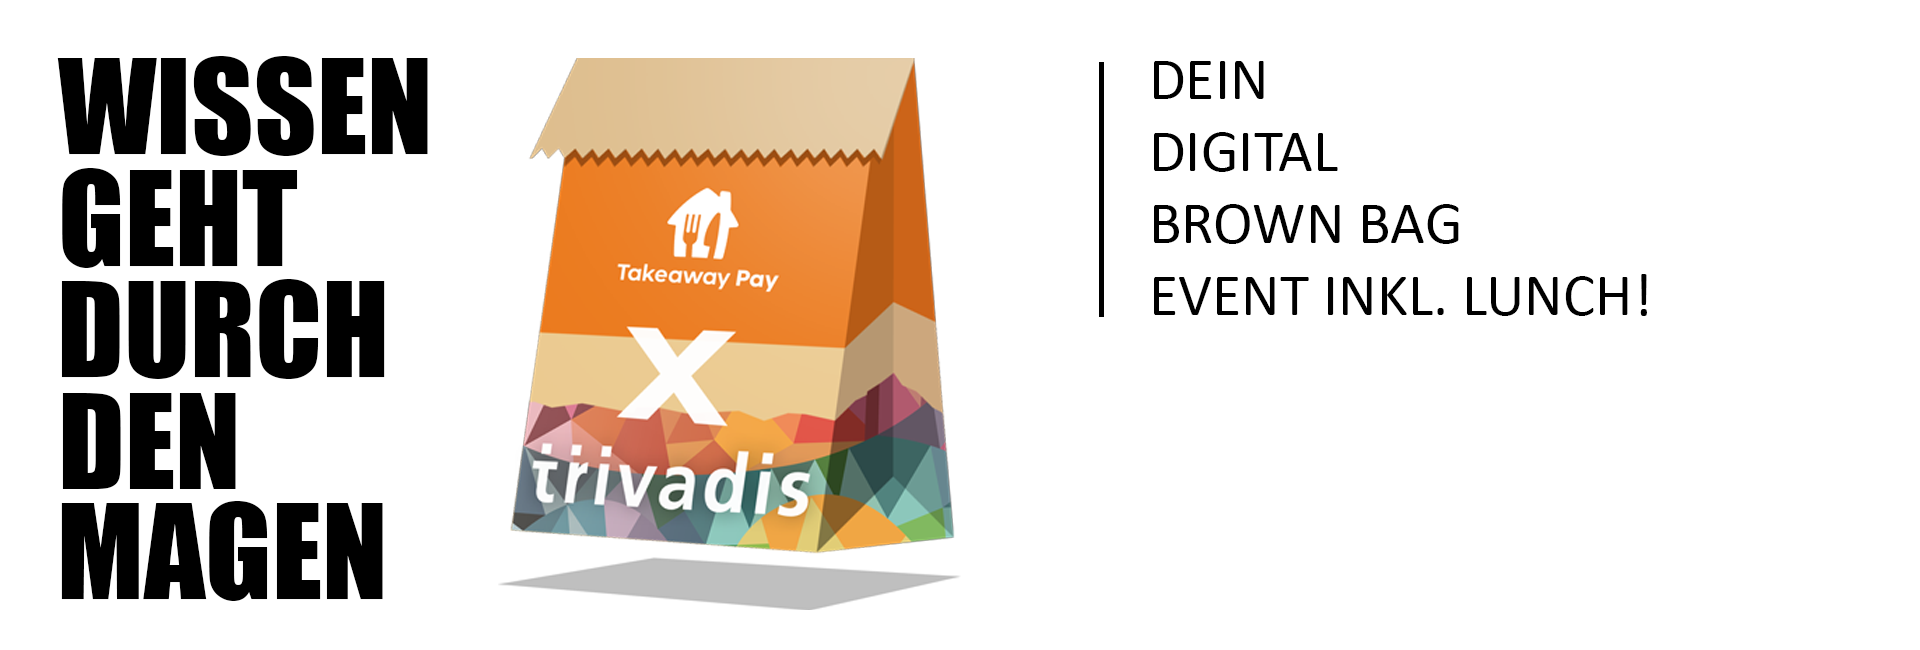 header-trivadis-digital-brown-bag-event-cloud-aws_1920x650px_NEU